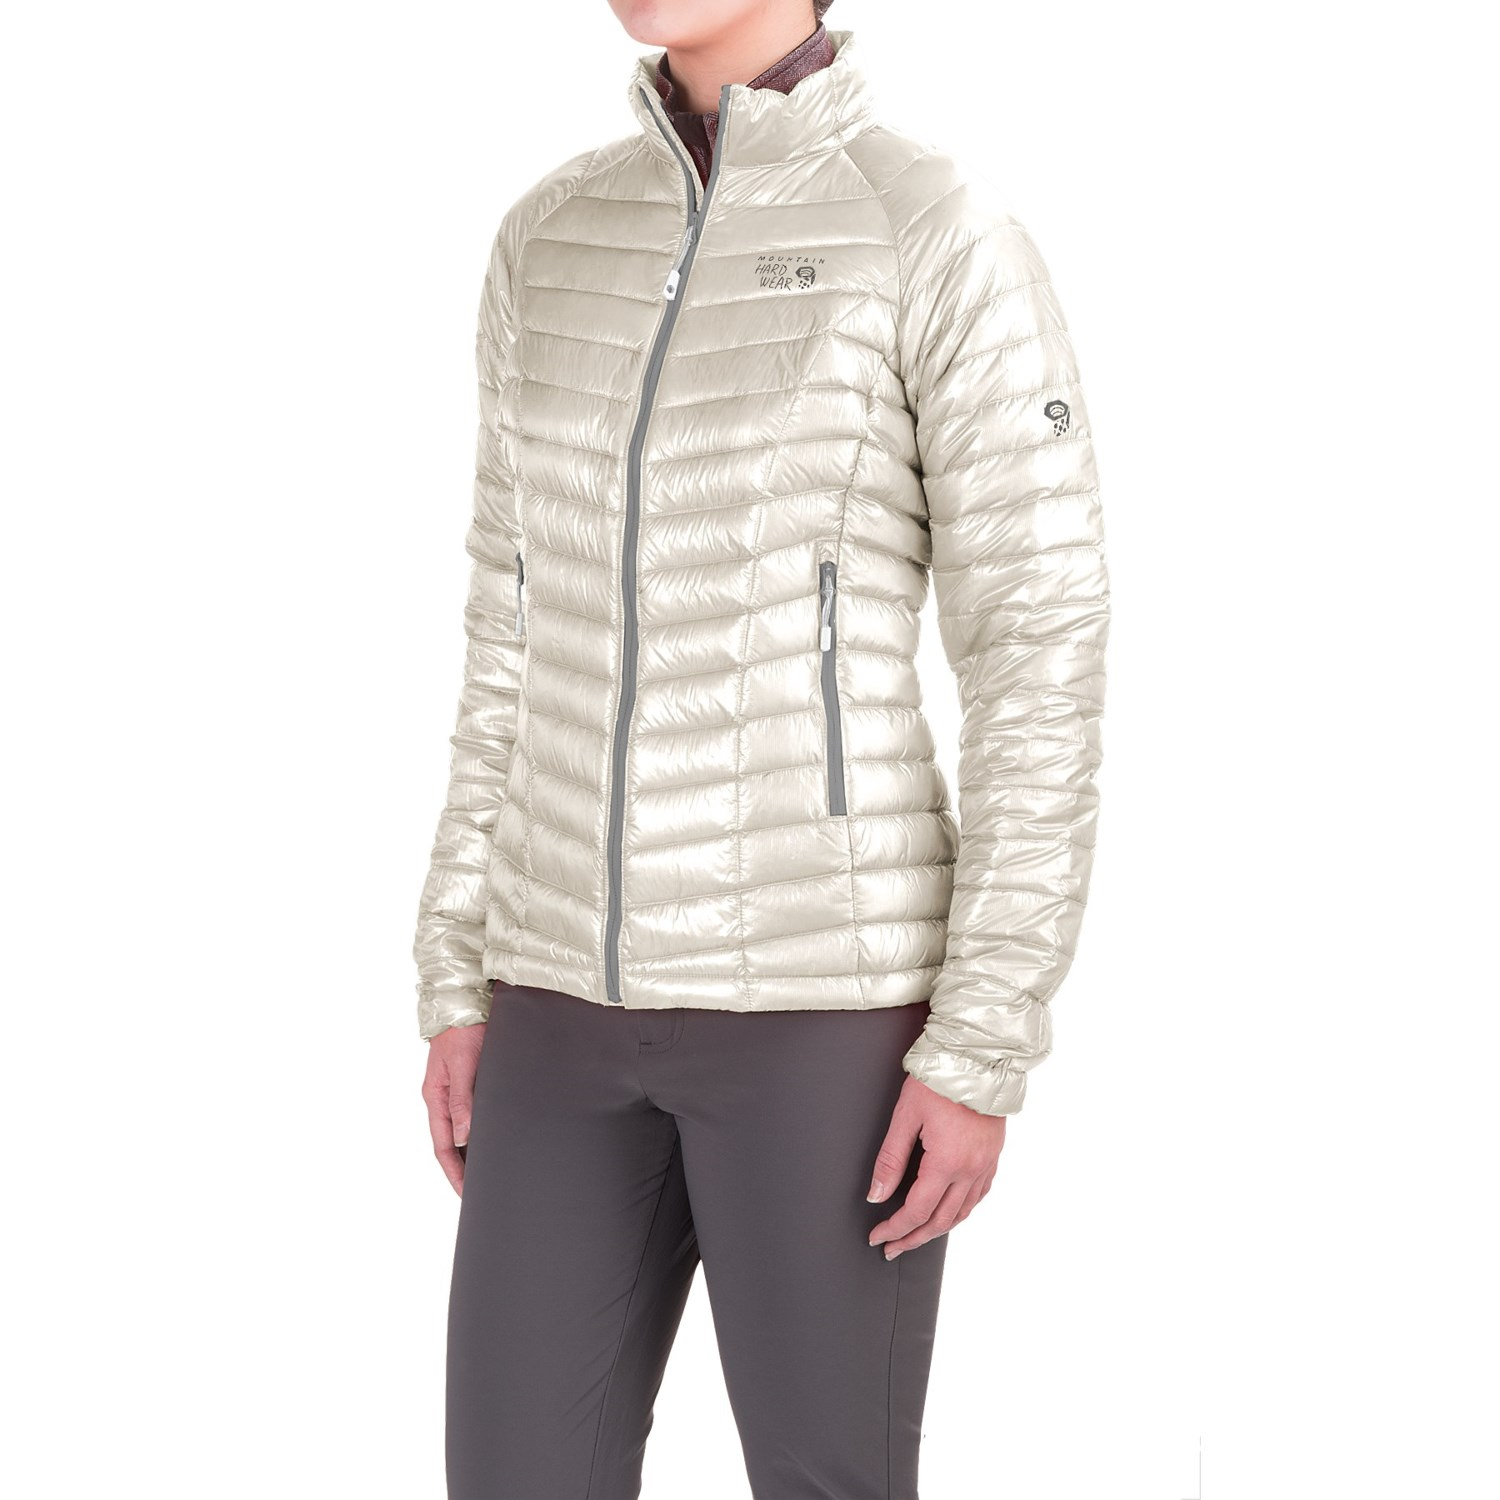 White Down Jacket Jackets Review